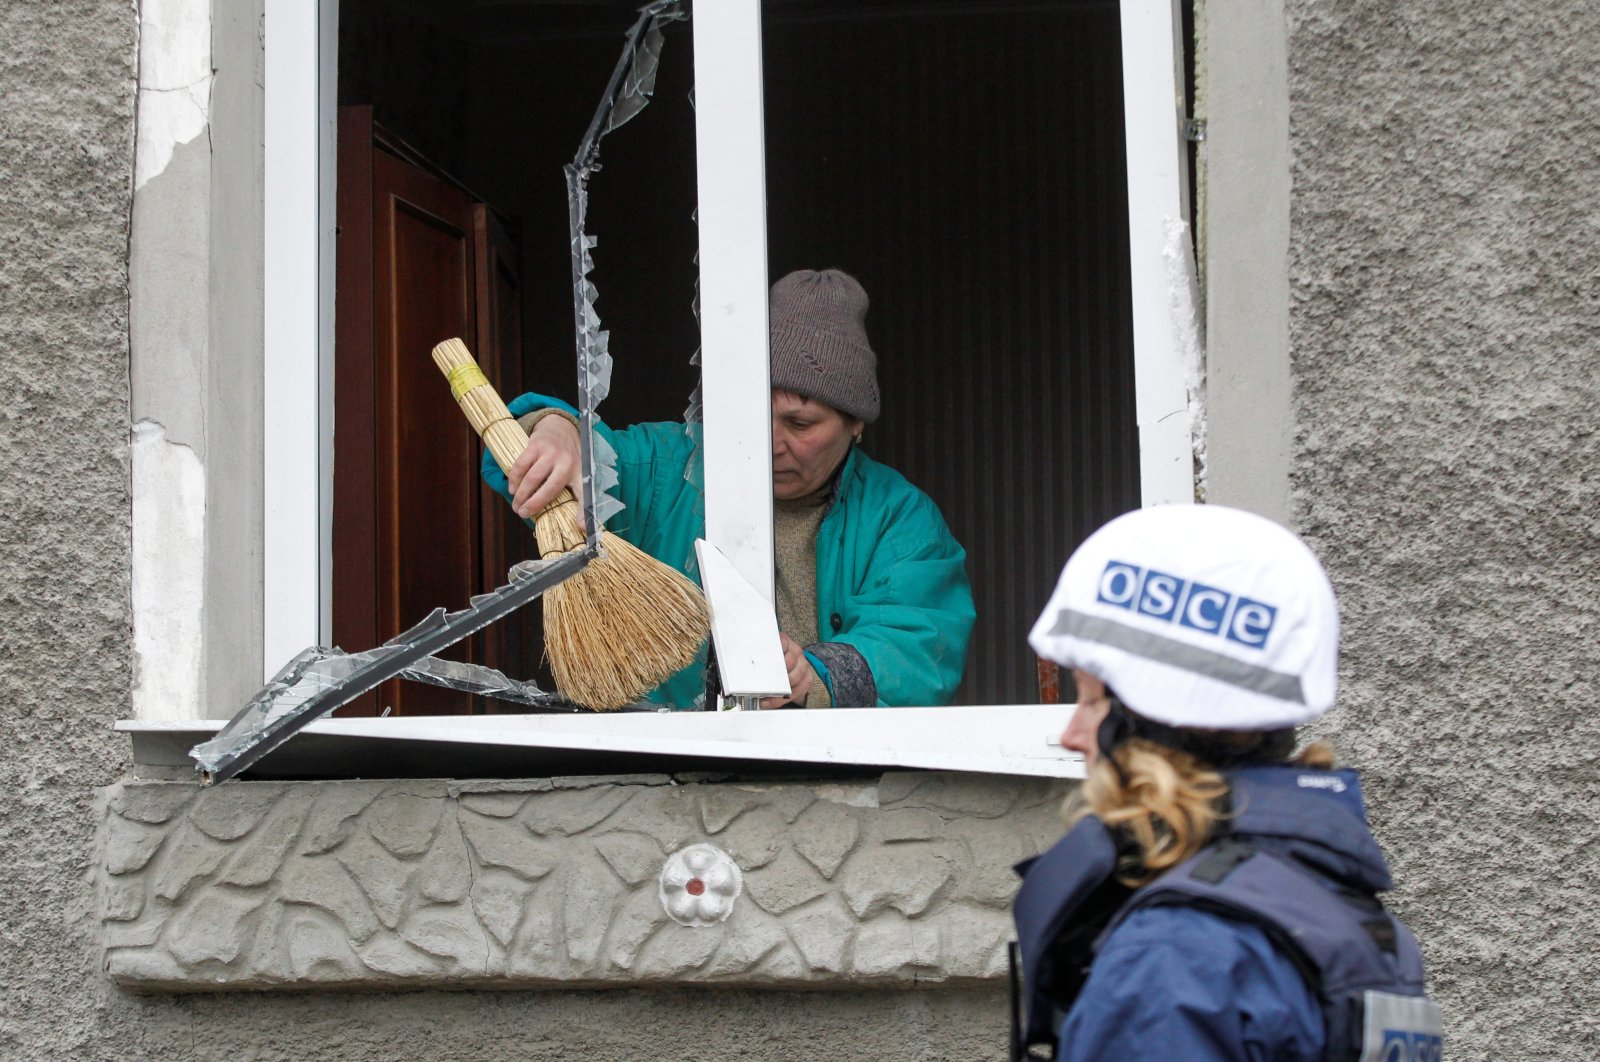 A member of the Organization for Security and Co-operation in Europe (OSCE) walks past a local resident removing debris from inside a house damaged during fighting between the armed forces of Ukraine and the separatist Lugansk People's Republic in the settlement of Holubivske, the Luhansk region, Ukraine, Feb. 19, 2020. (Reuters Photo)